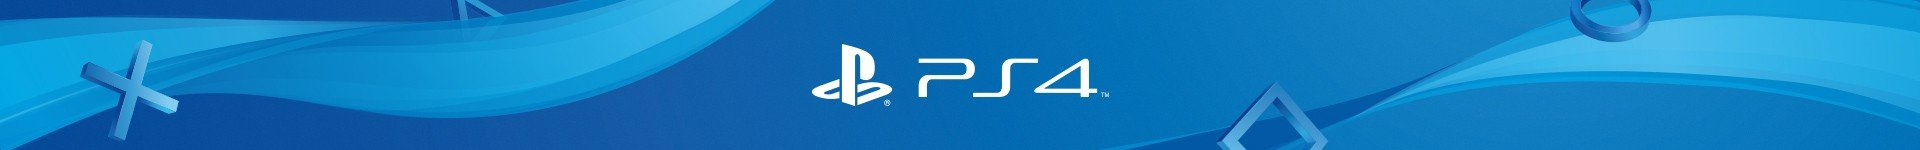 Playstation 4 spill